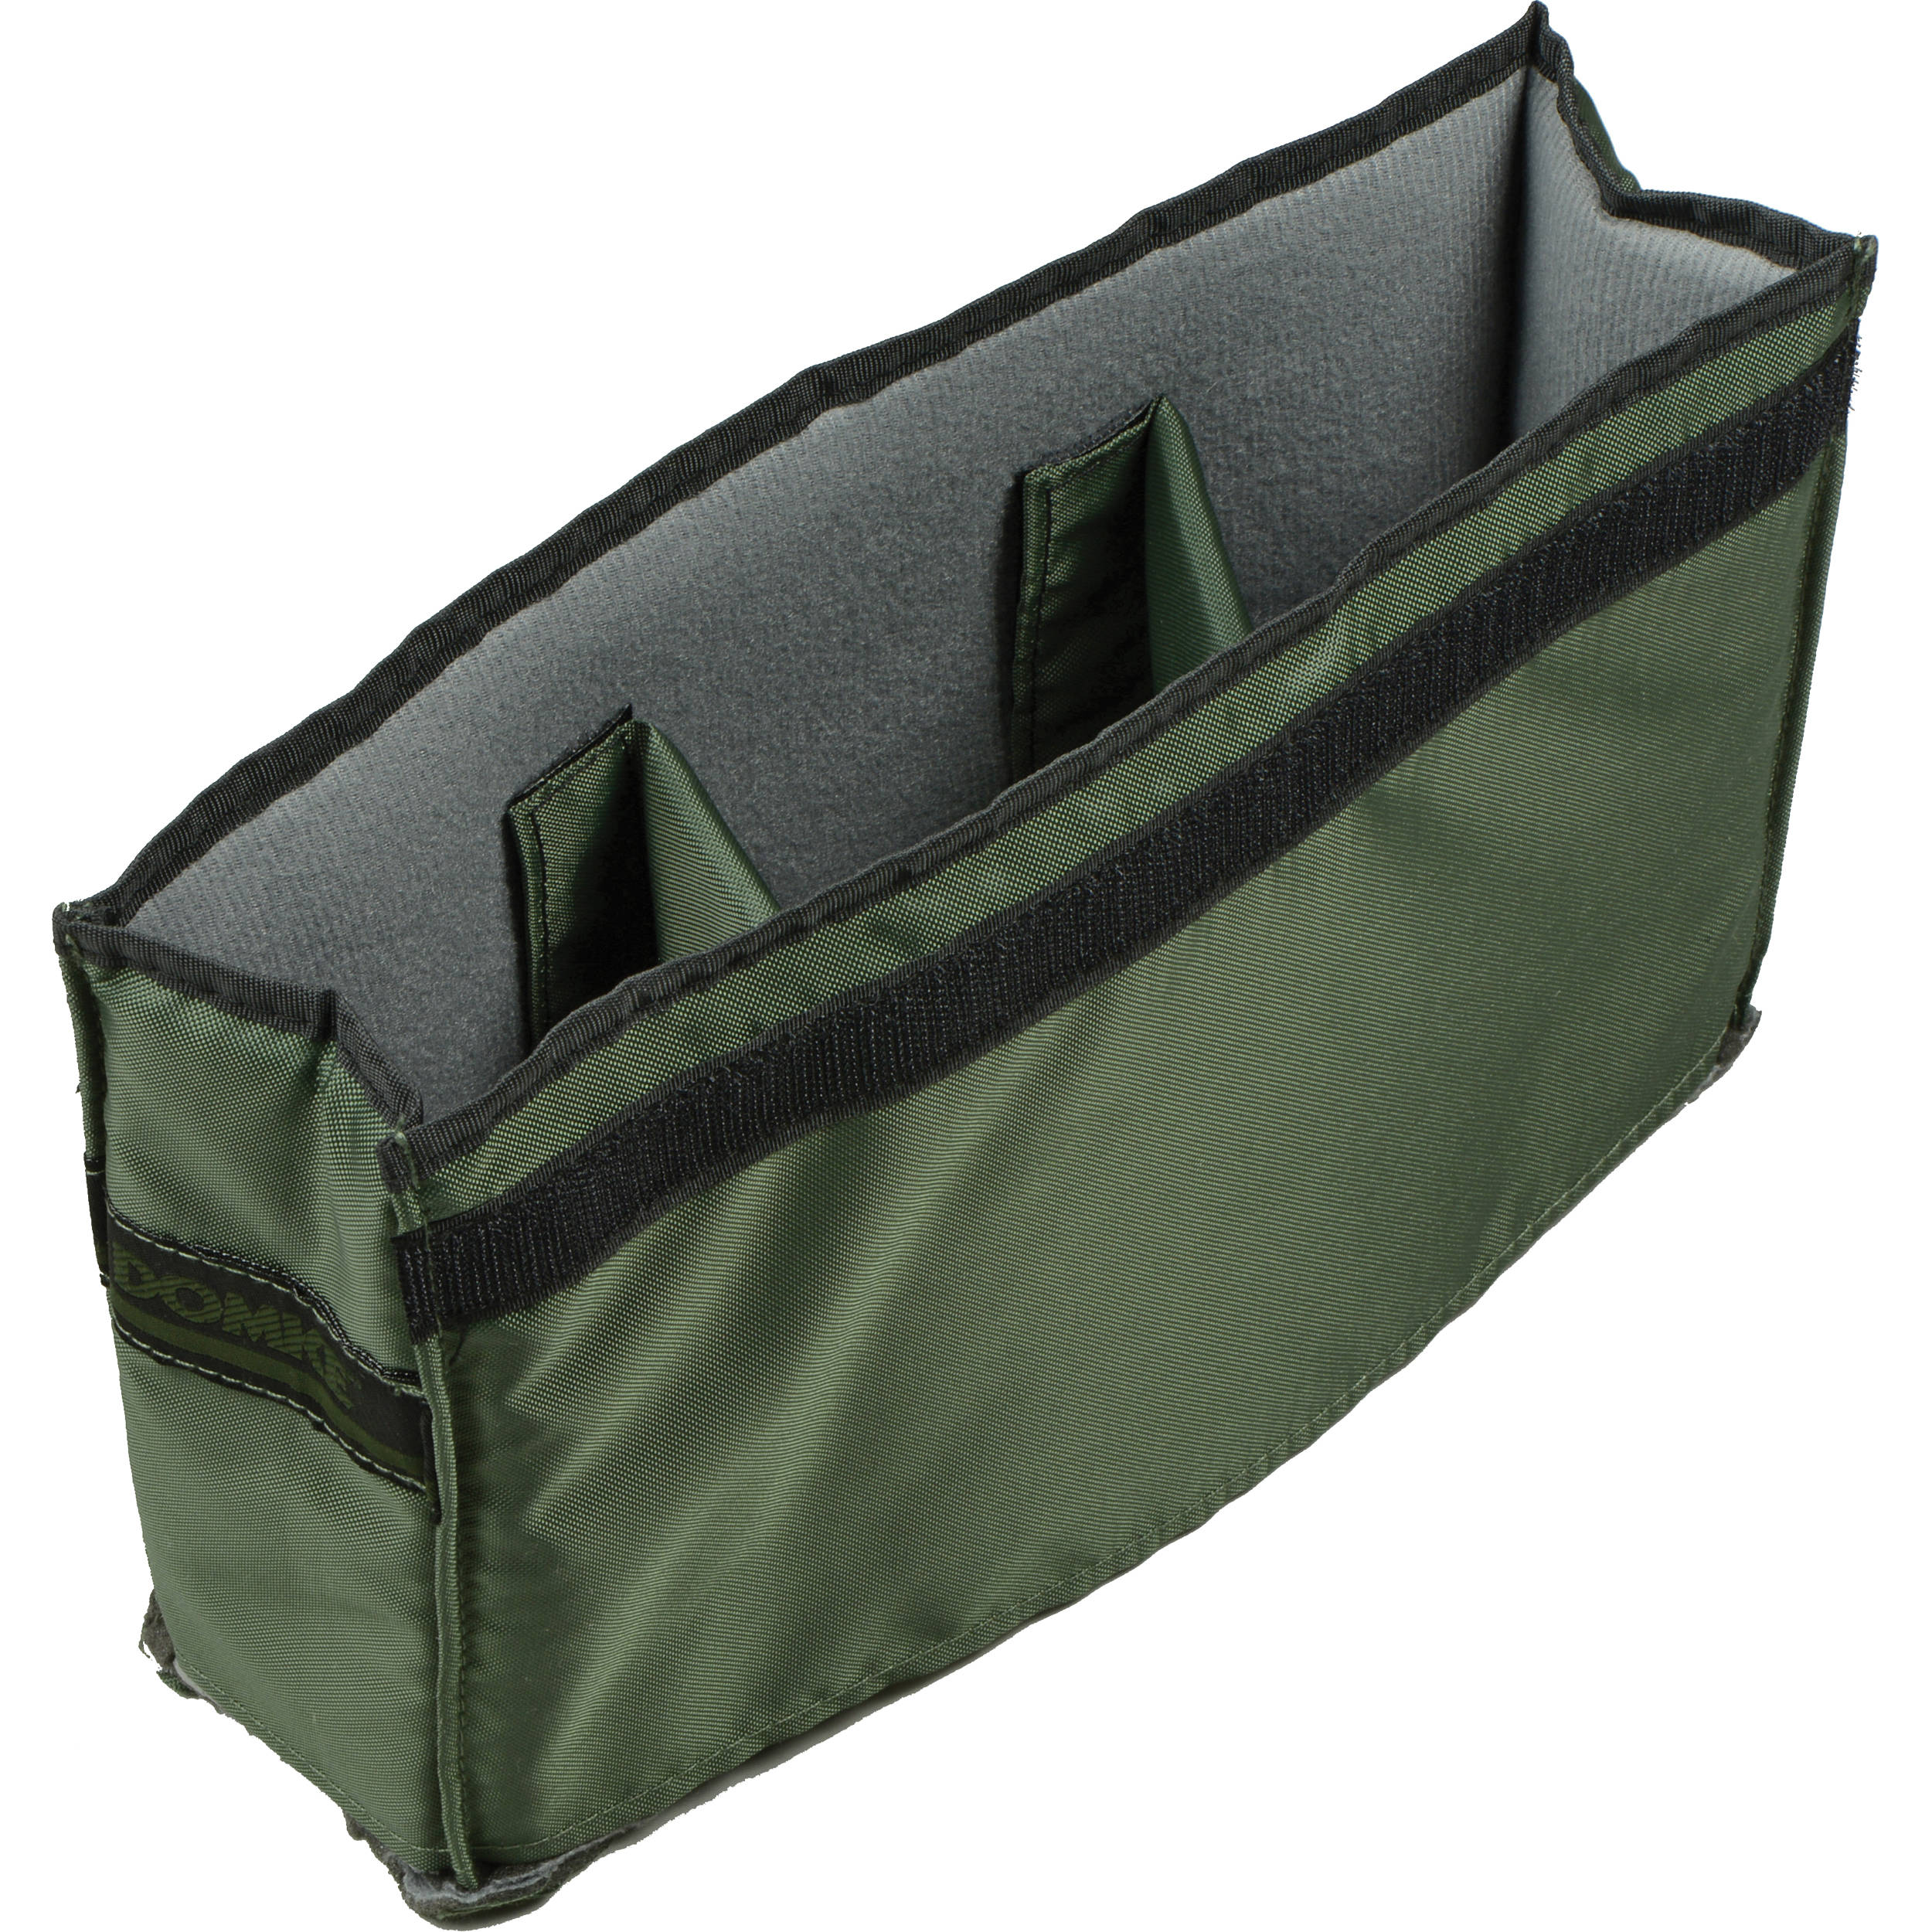 Domke fa 230 3 compartment insert gray green 720 230 b h for Ecksofa 230 x 230